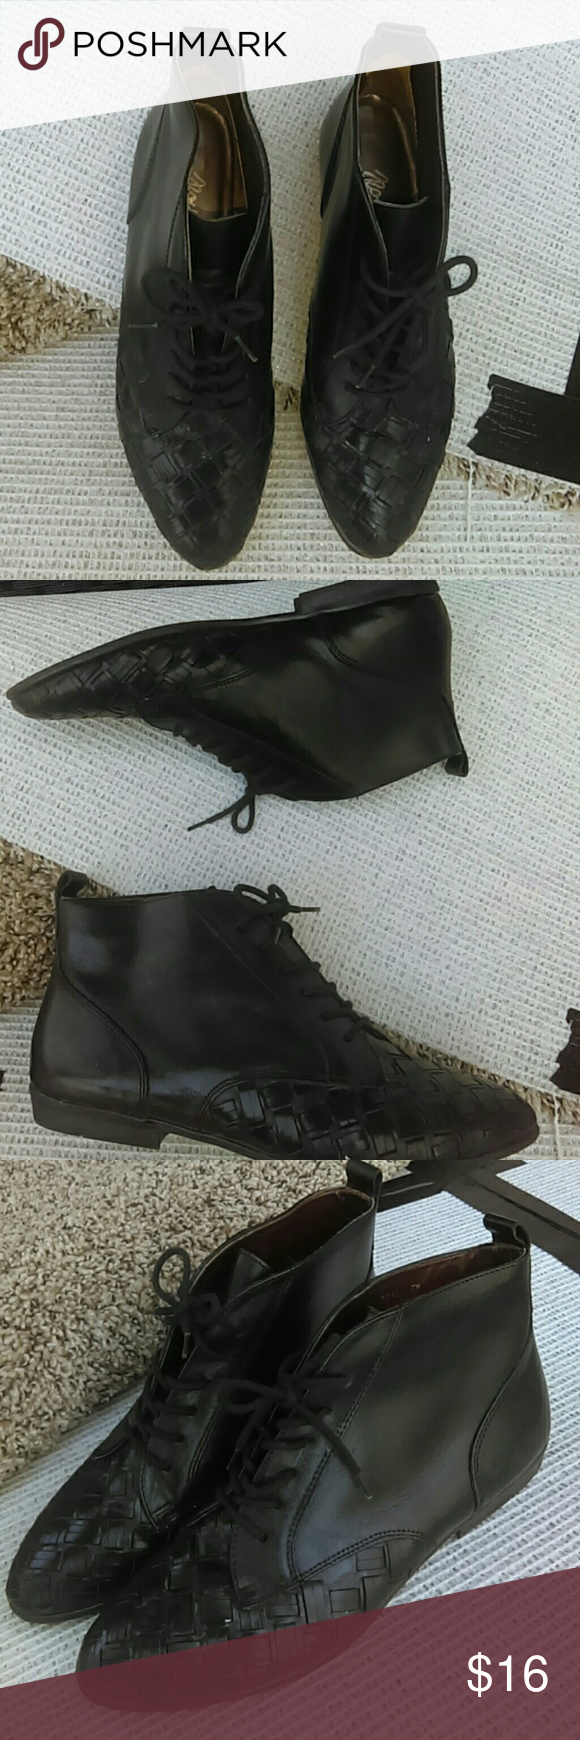 Black pointed toe ankle booties Patent leather Upper and weaved front make this booties a fun addition to your featuring lace up front and 1inches heel . Pre owned ravioli Sport Shoes Ankle Boots & Booties